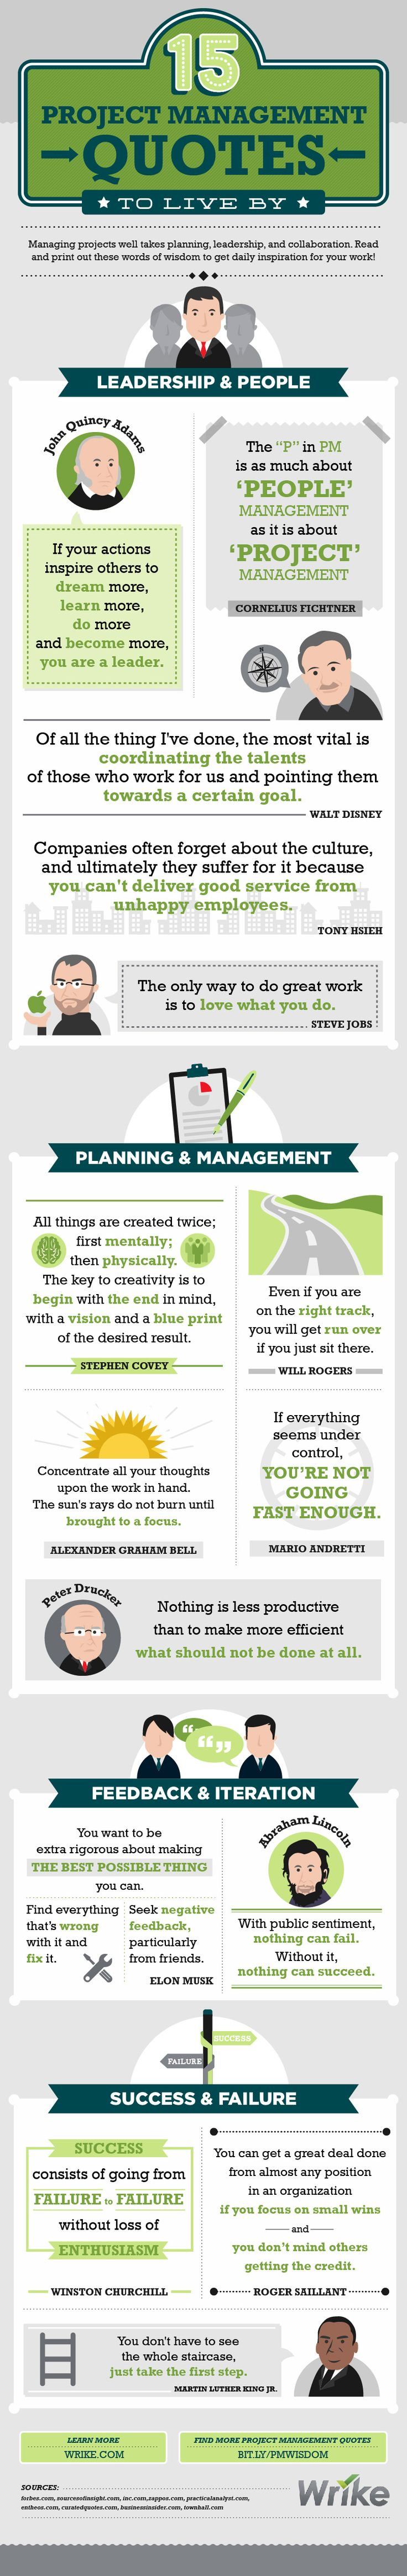 "15 Project Management Quotes That Will Help You Stay Motivated By Siobhan Harmer - ""Inspiration can come from anywhere."" - More Pins on Leadership: http://www.pinterest.com/addfreesources/leadership-entrepenurial-qualities/"